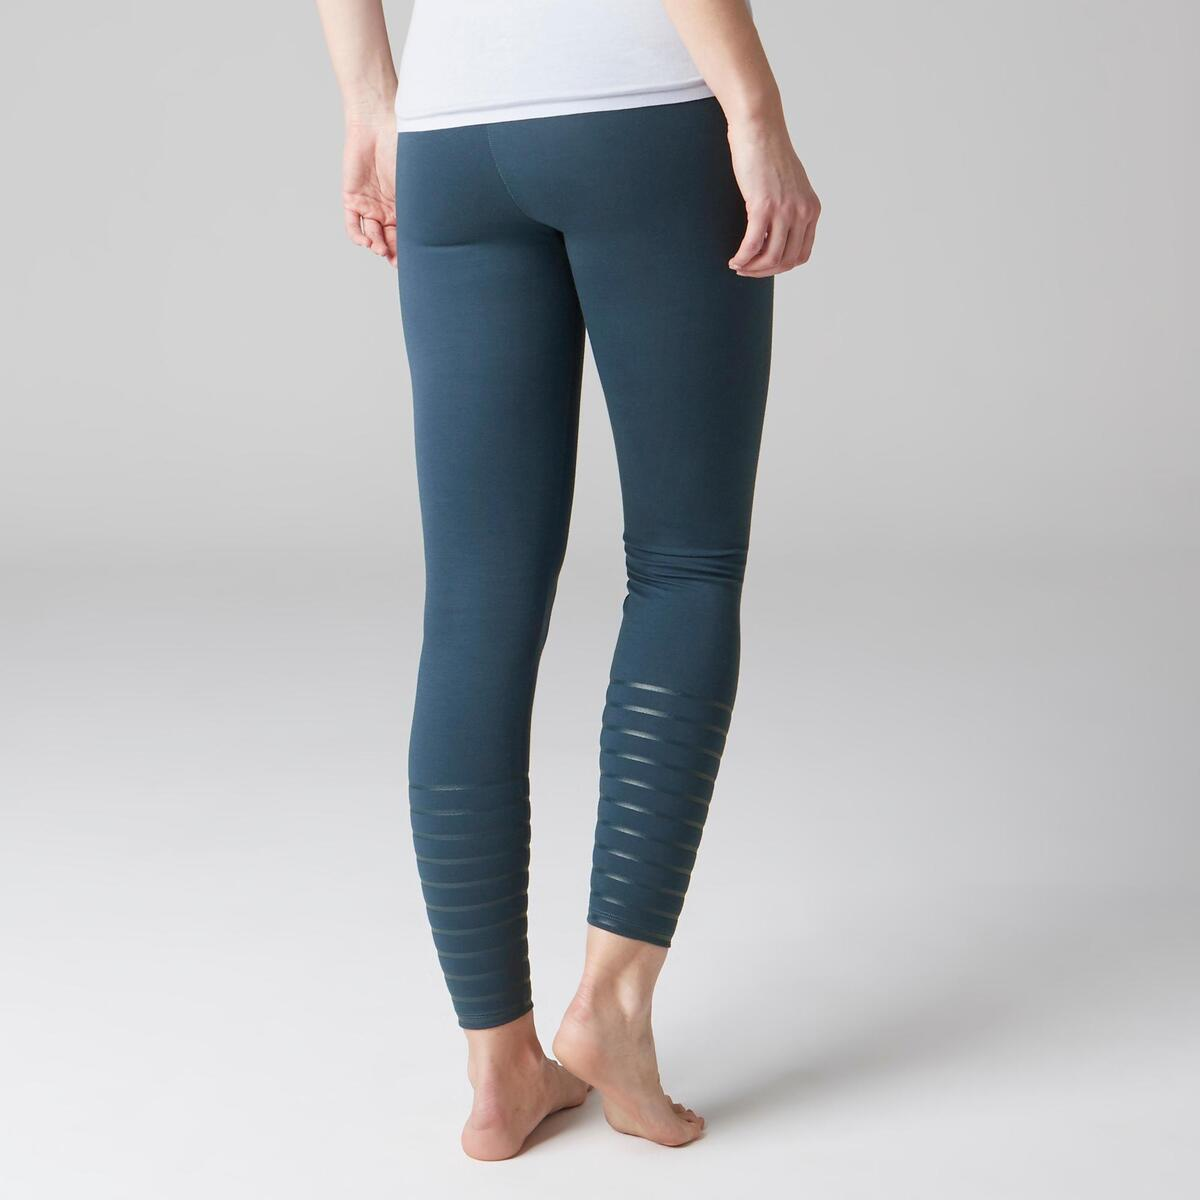 Bild 3 von Leggings 900 Slim Gym Stretching & Pilates Damen blau